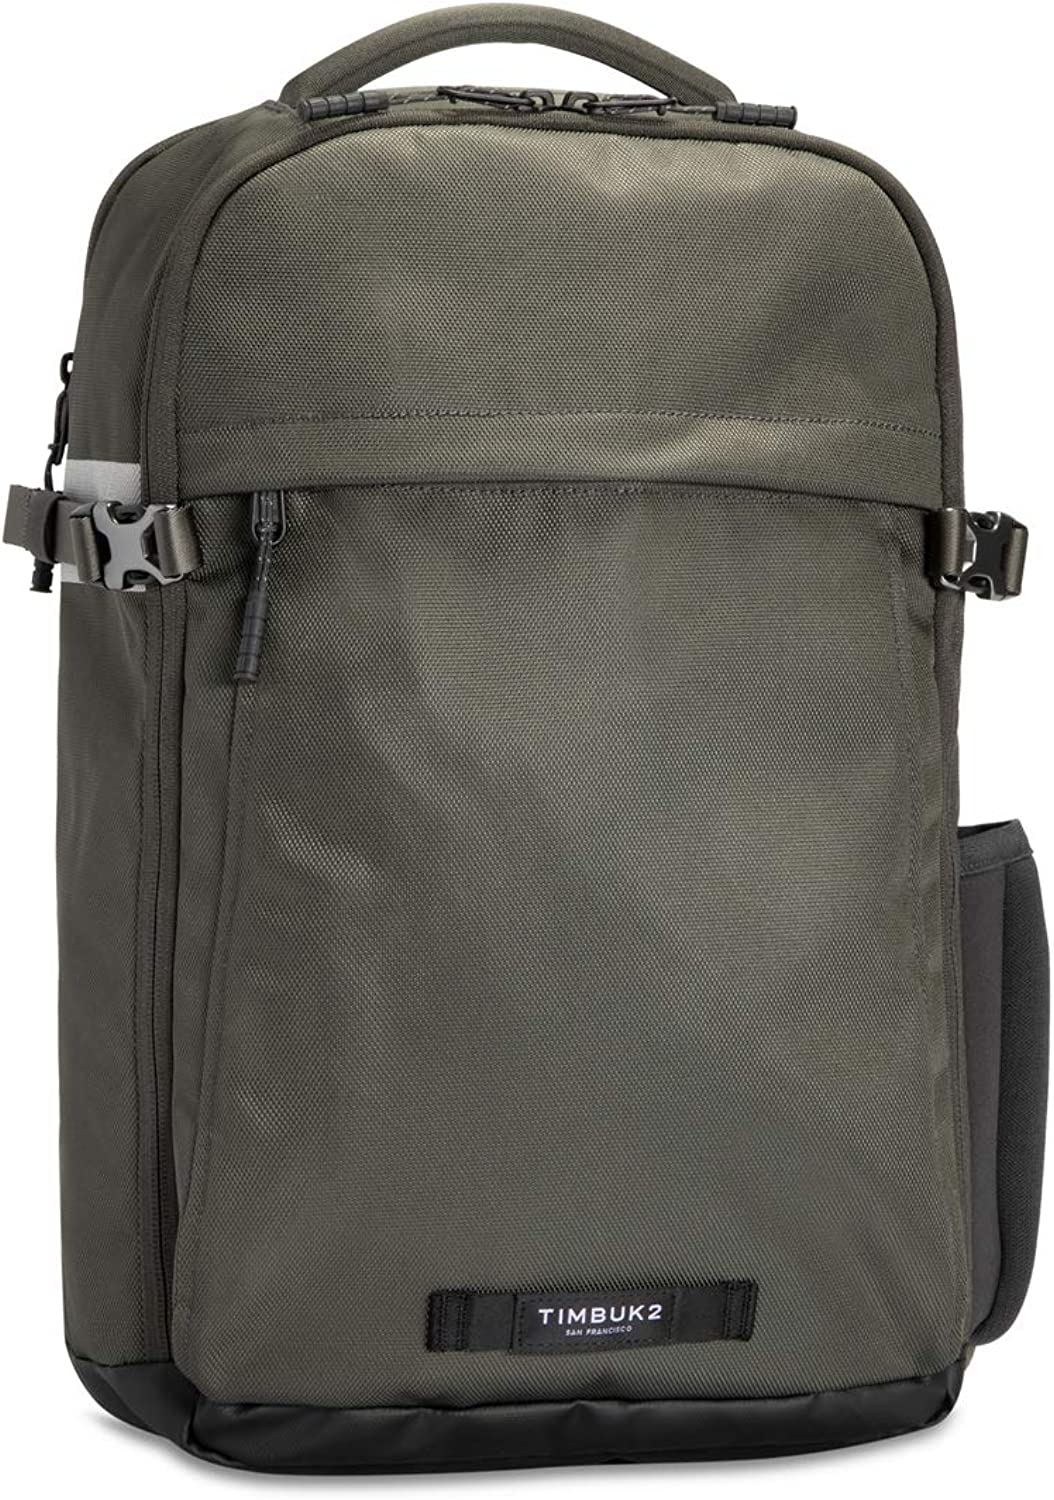 TIMBUK2 Division Deluxe Laptop Backpack